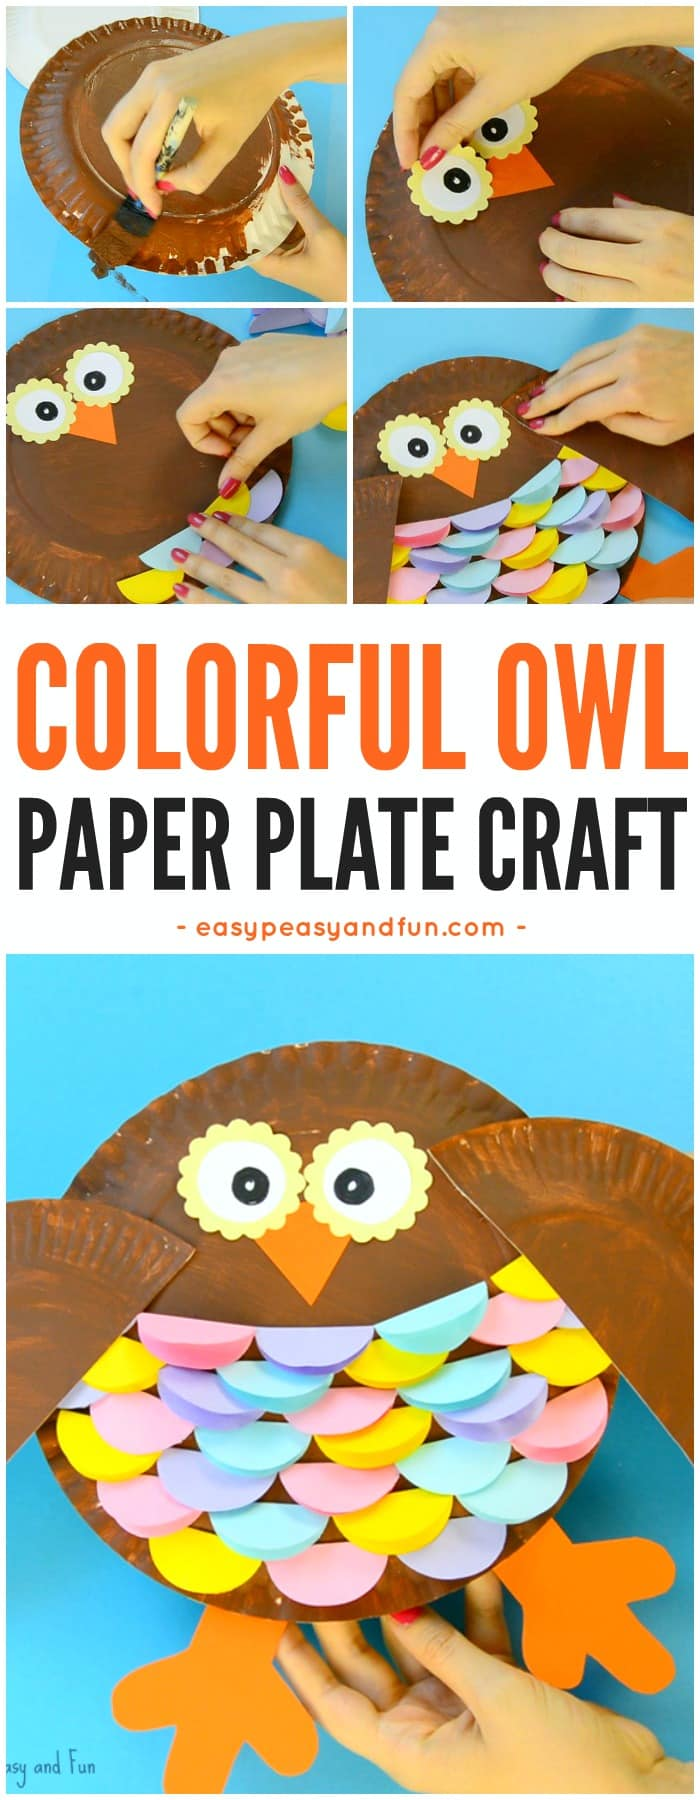 Colorful Paper Plate Owl Craft for Kids. Fun paper plate crafts for kids.